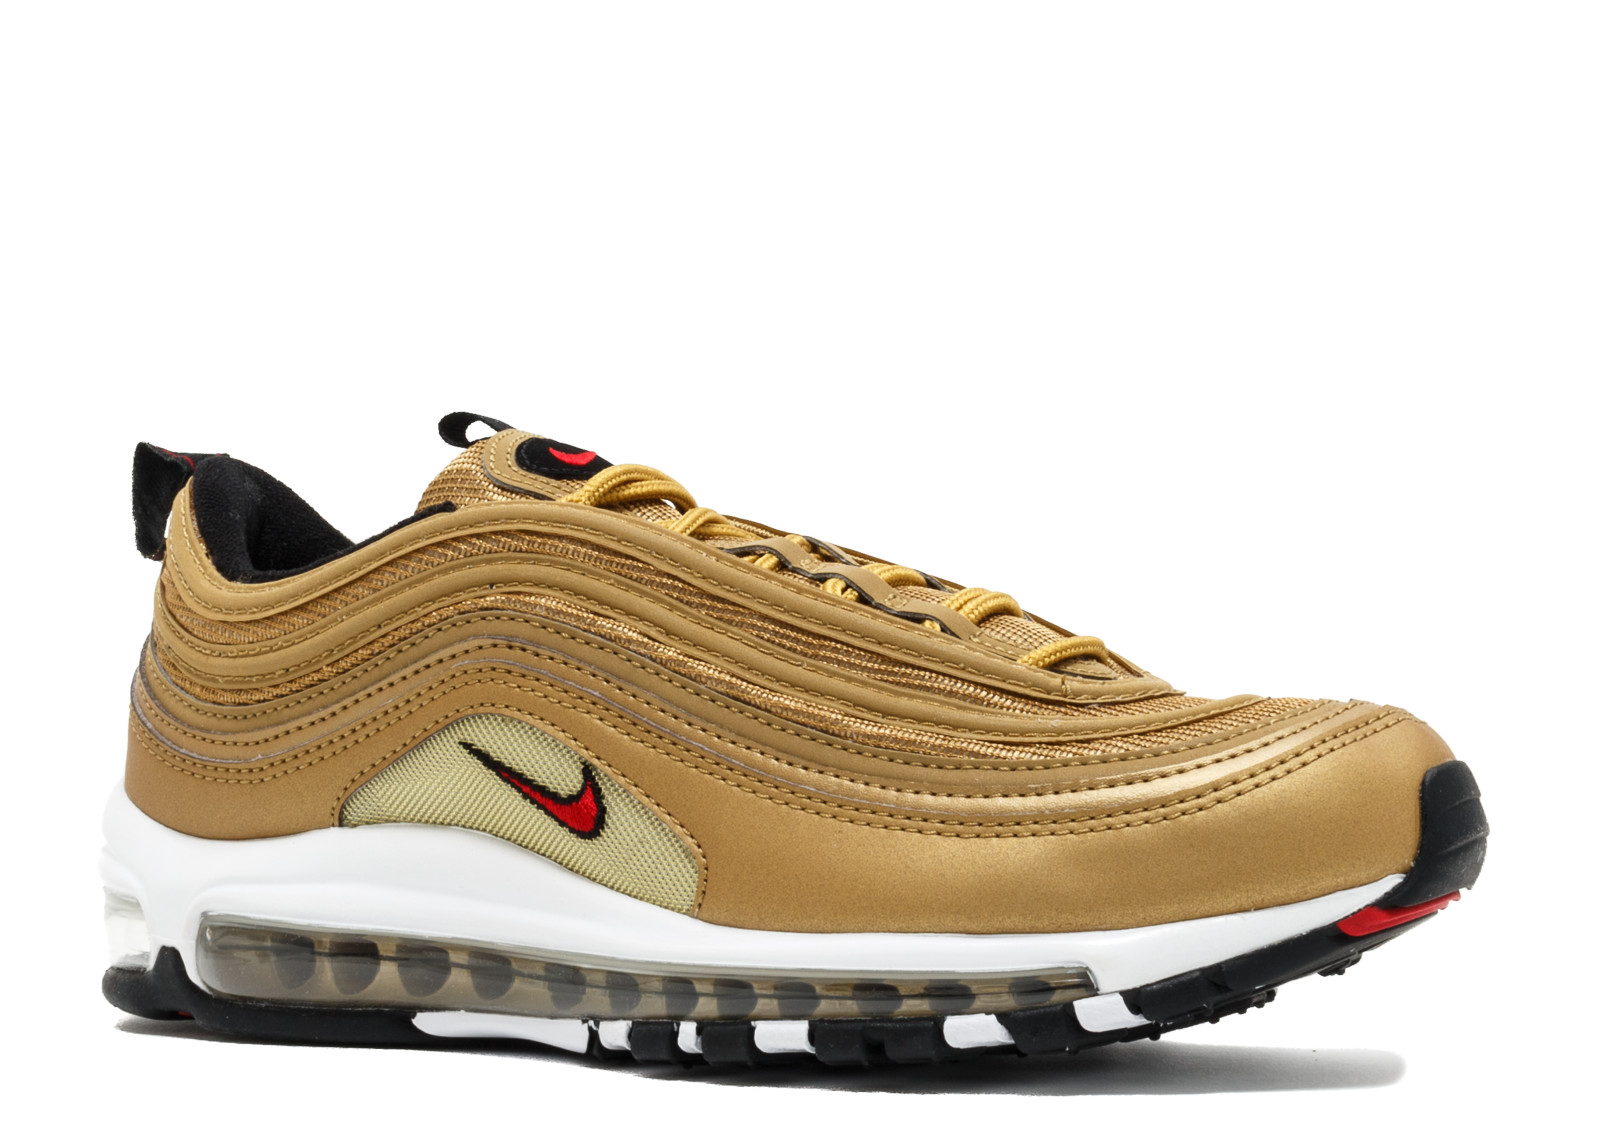 "Nike Air Max 97 og qs""2017 release"" - Click Image to Close"